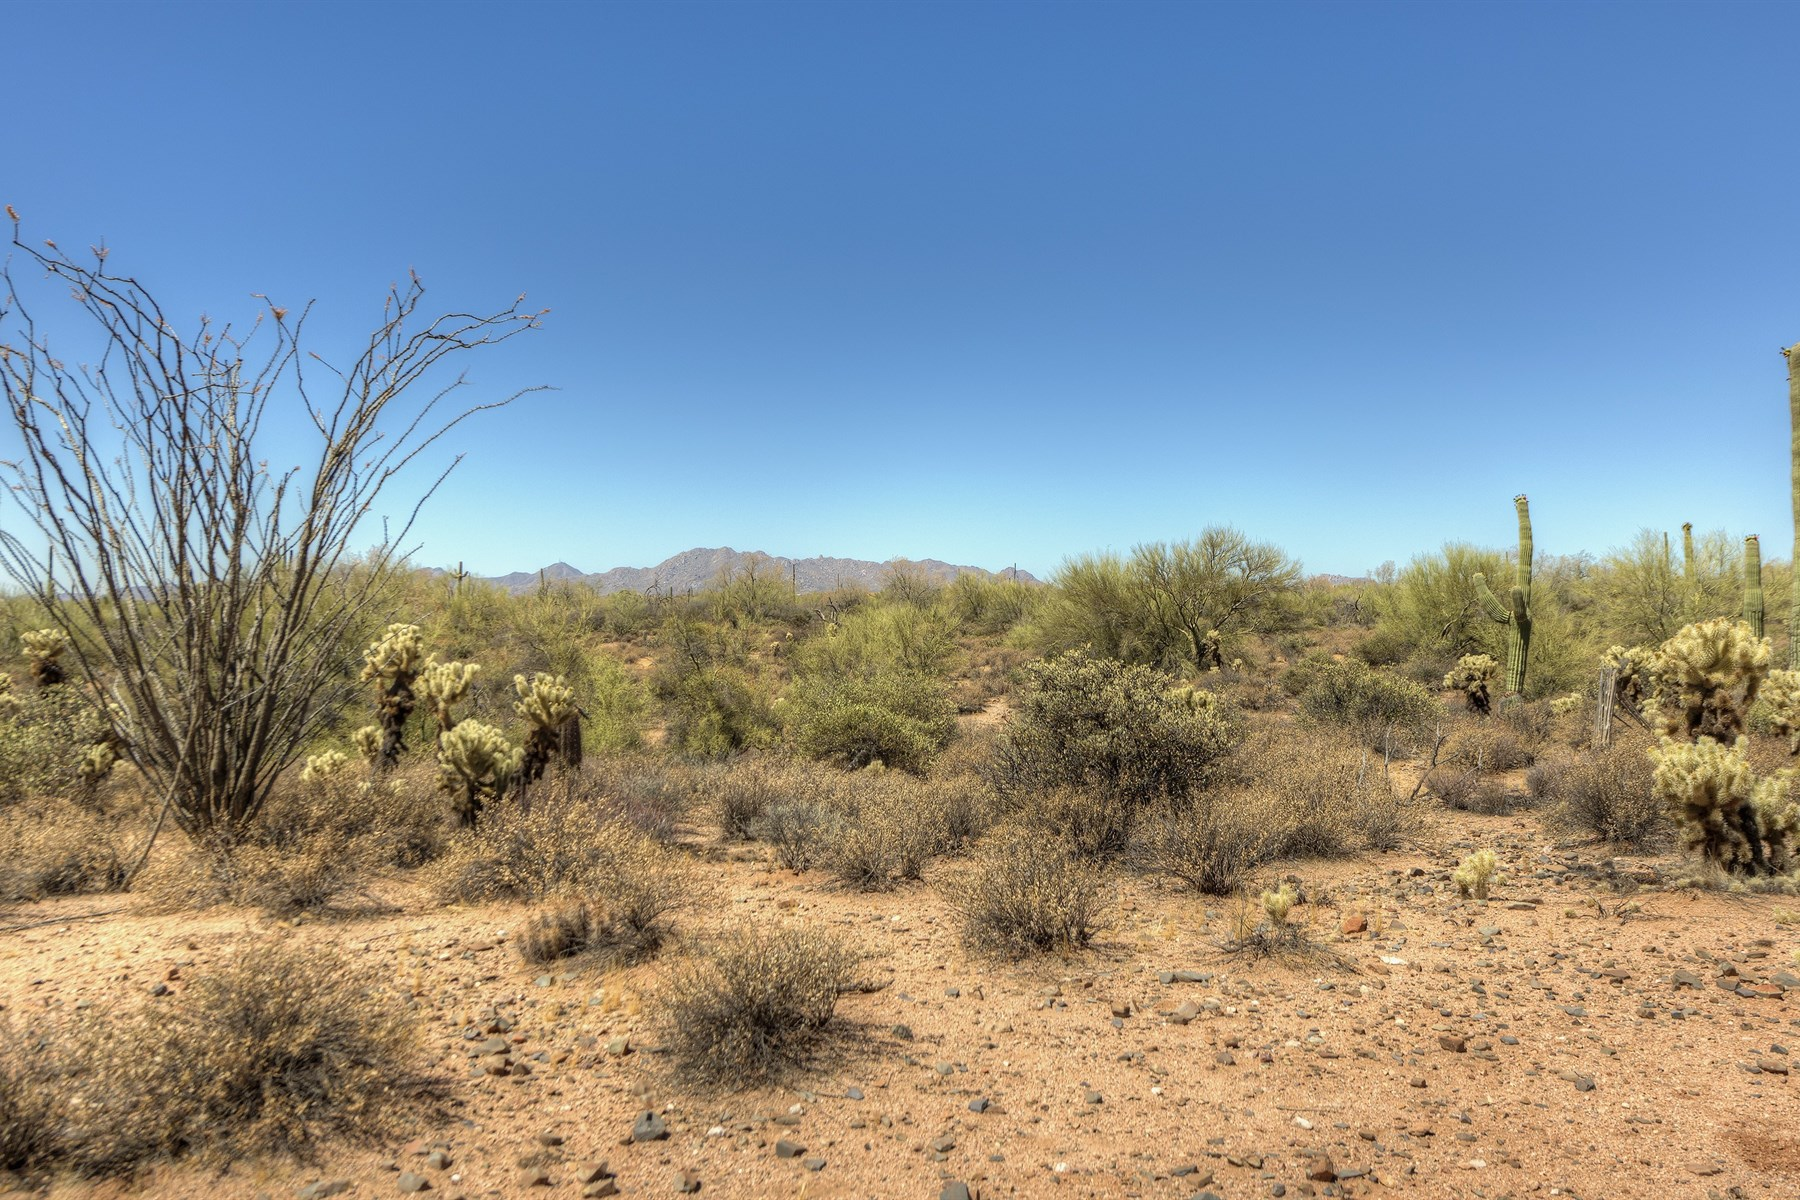 Terreno para Venda às Wonderful 9.99 acre parcel with endless views 17400 E Lowden Rd Scottsdale, Arizona, 85262 Estados Unidos